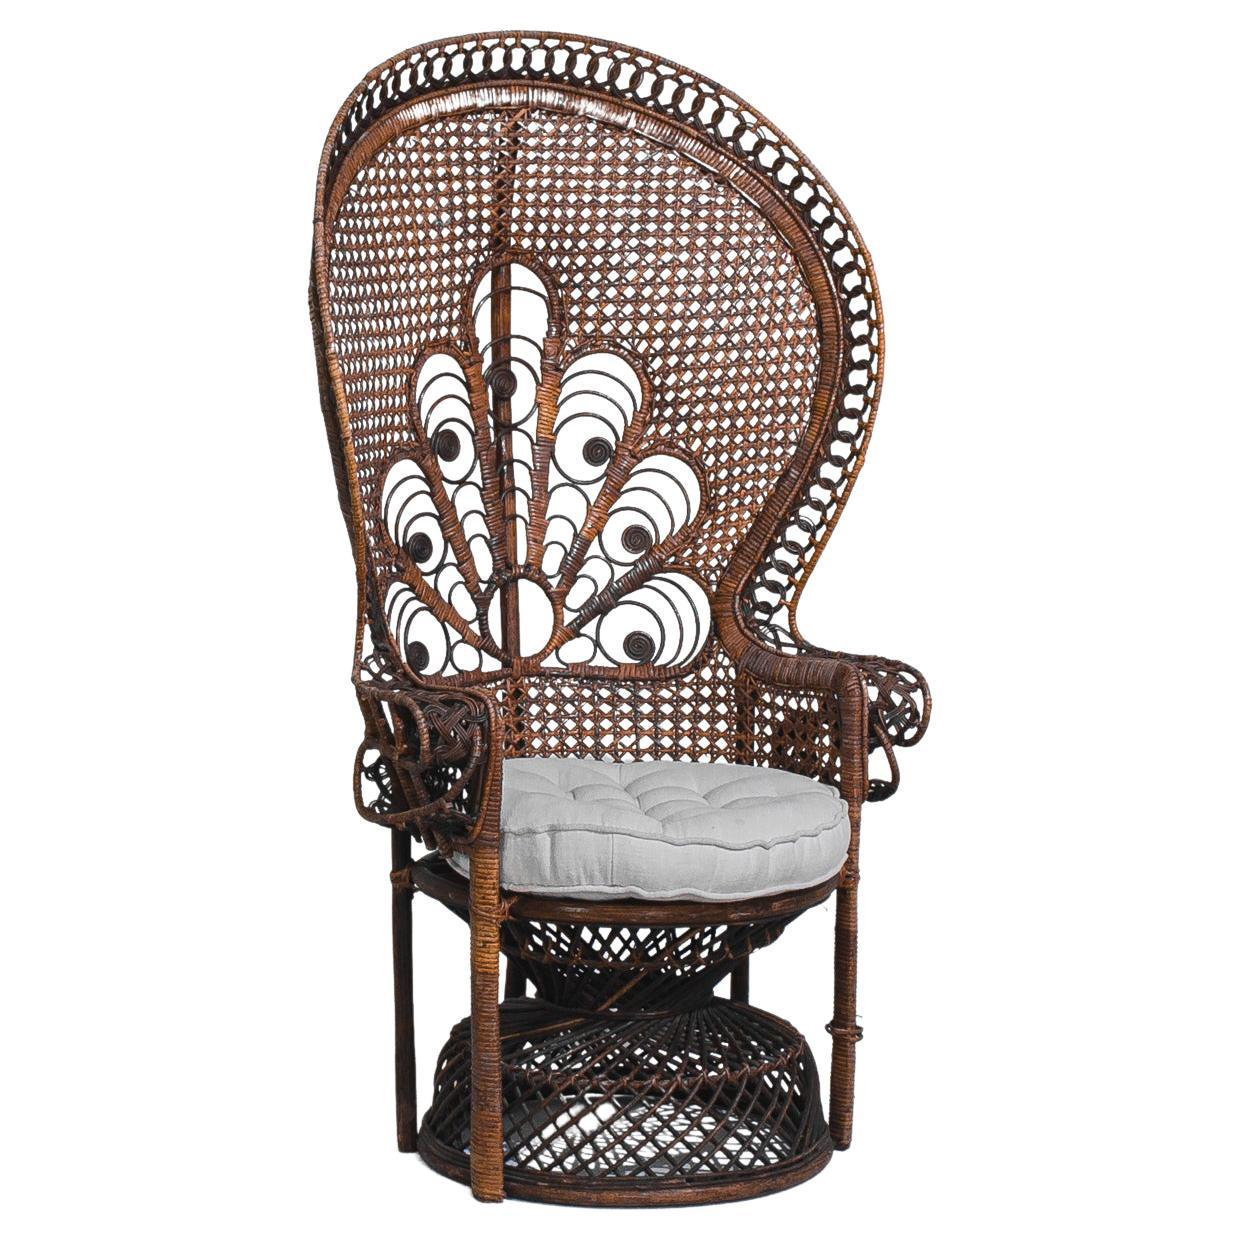 1960s French Rattan Armchair with Upholstered Seat